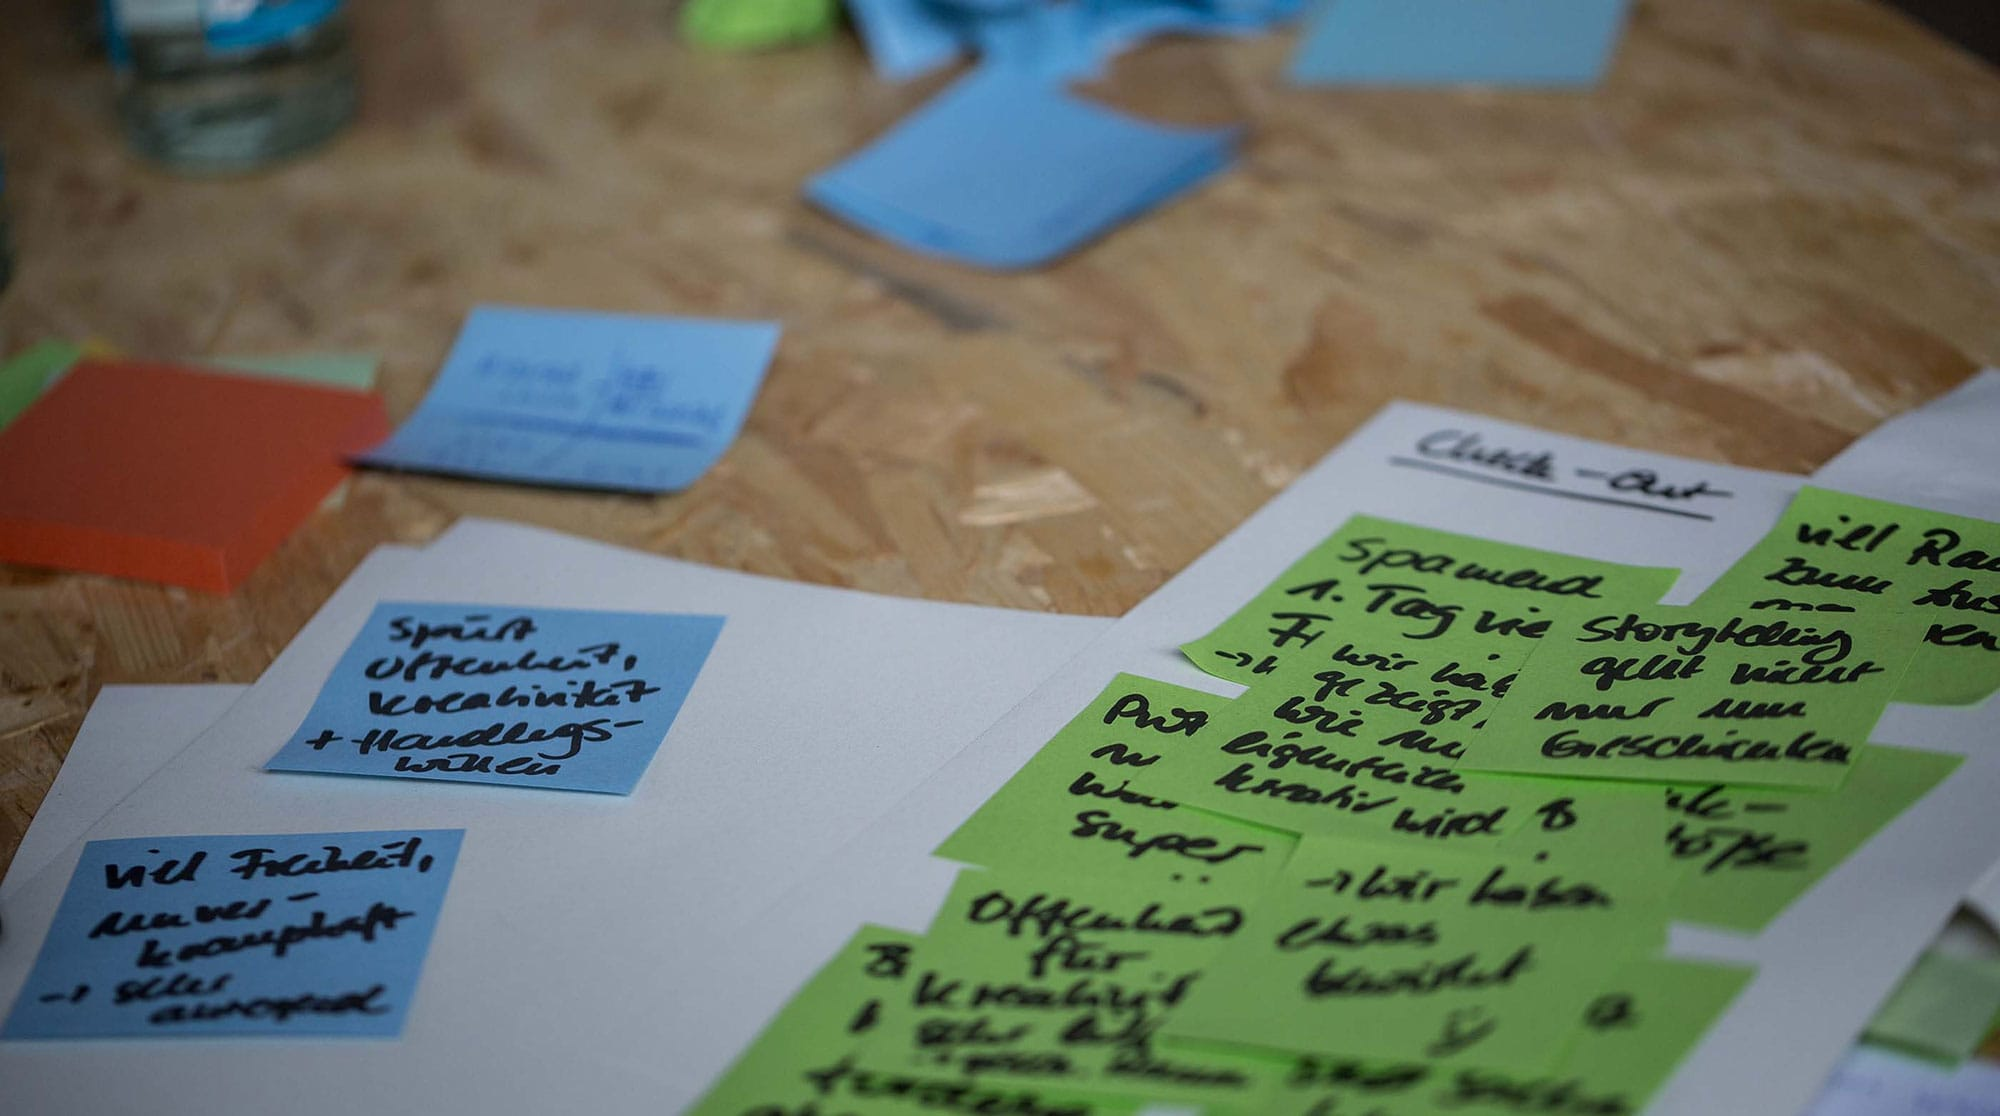 Post-its and notes for brainstorming and clustering ideas